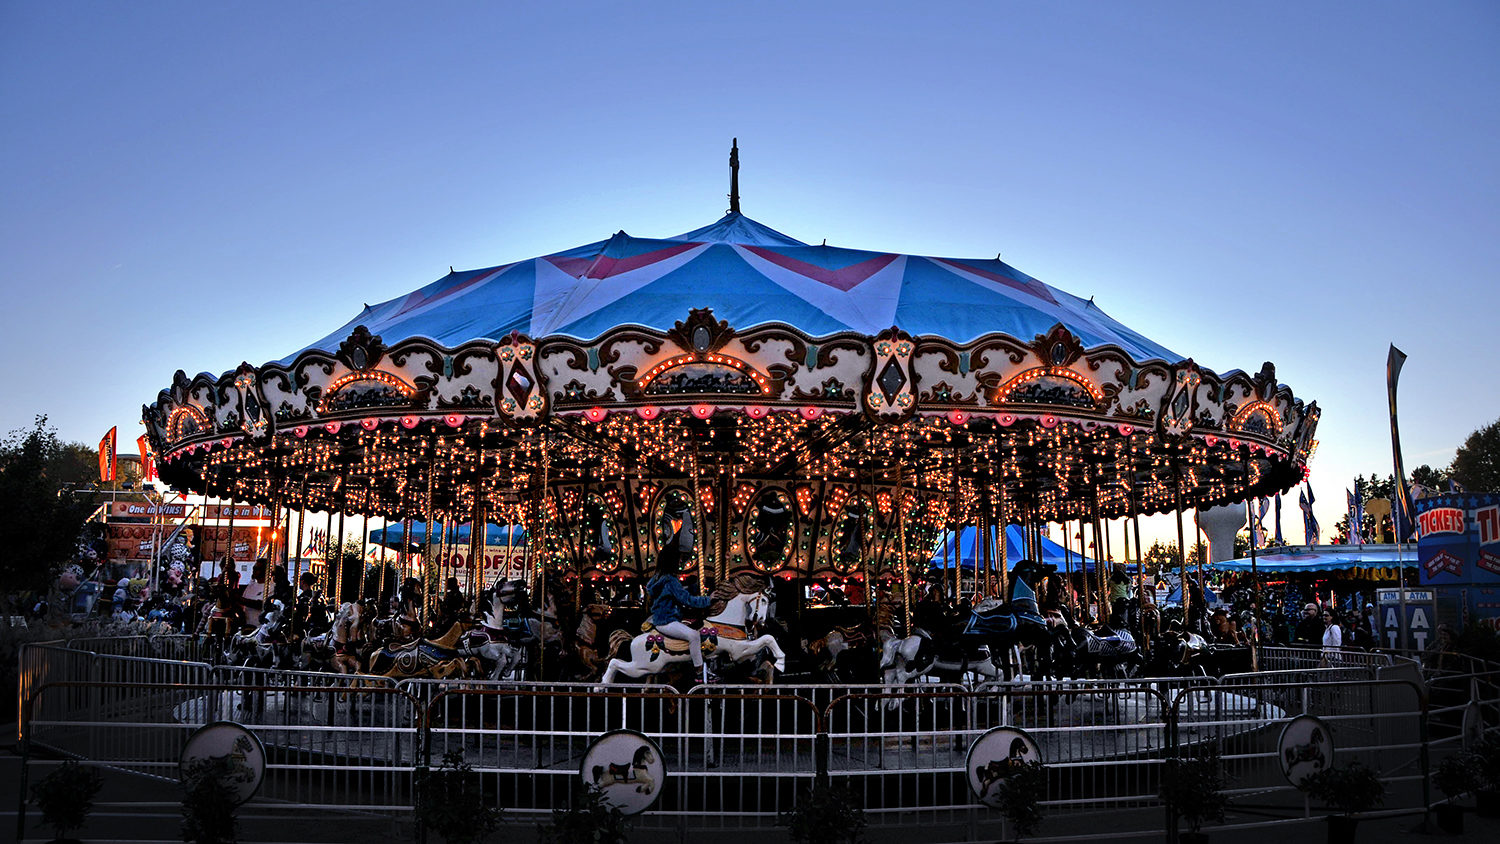 At dusk, children ride a brightly-lit merry-go-round.